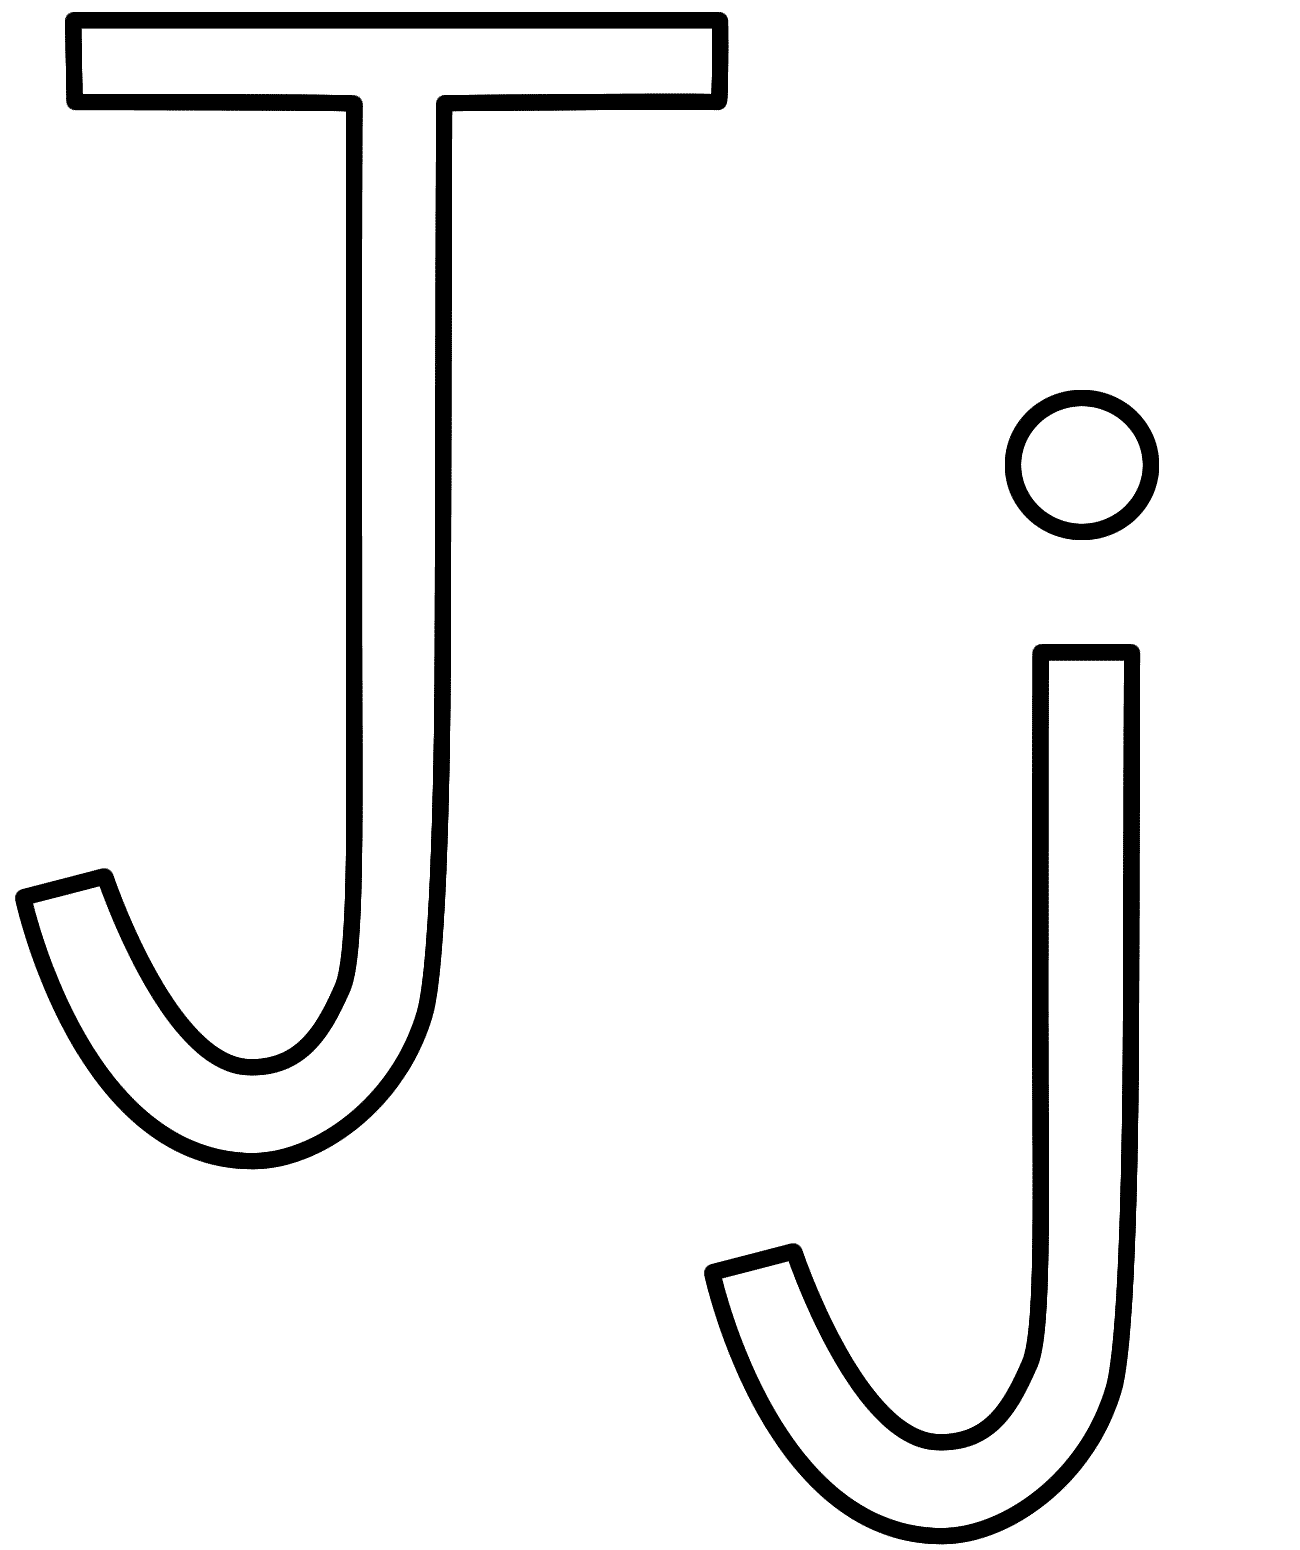 letter j colouring sheets letter j coloring pages to download and print for free colouring sheets j letter